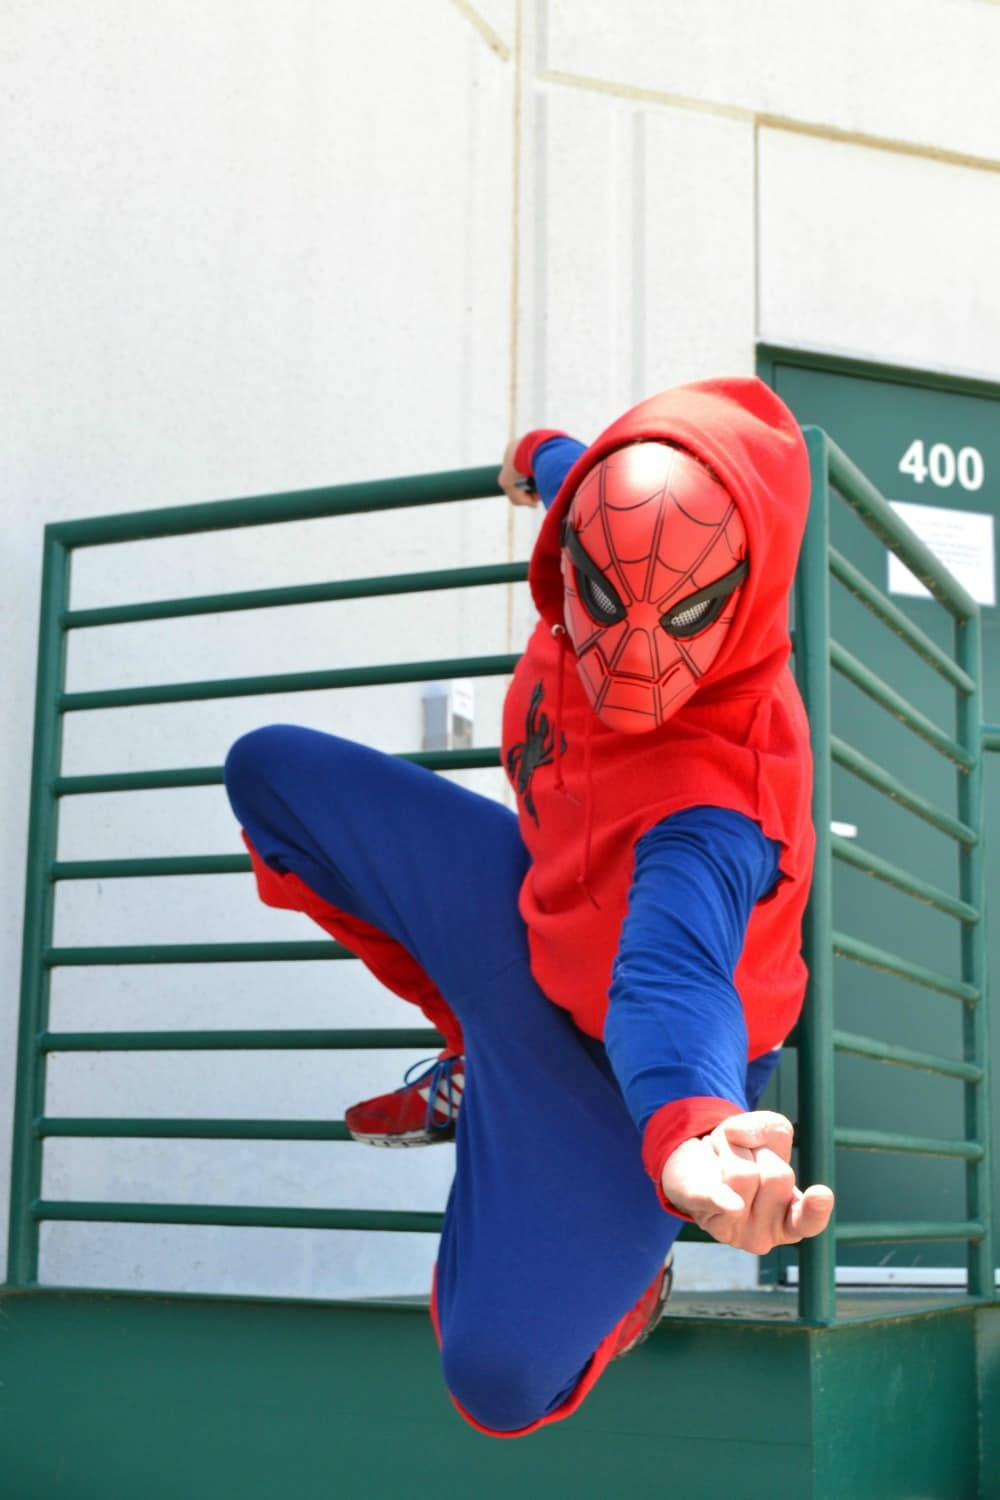 DIY - Spiderman Costume! Easy to make for Halloween!